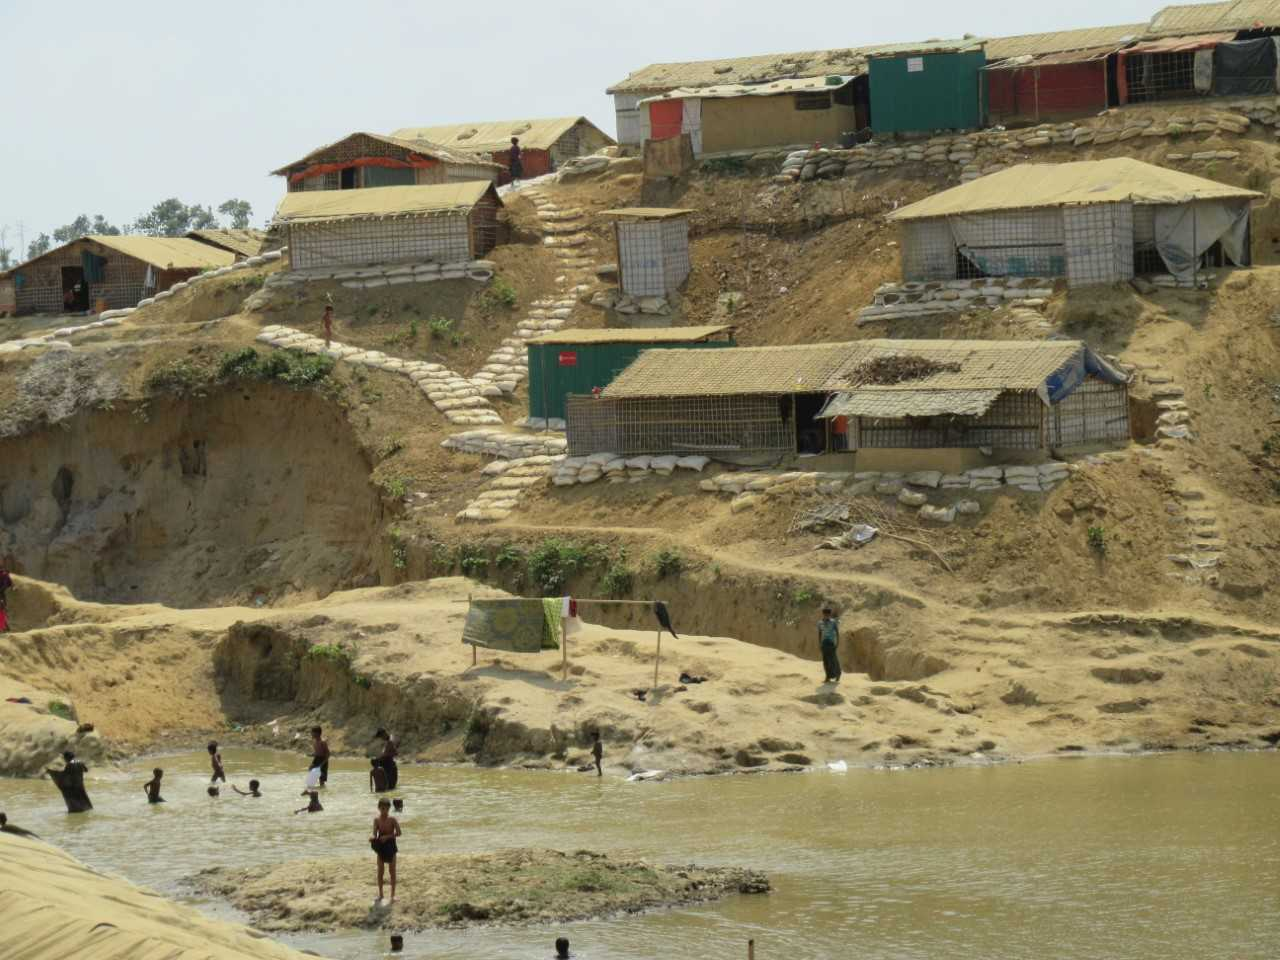 Rohingya refugee camp on hillside potentially vulnerable to upcoming monsoon rains.